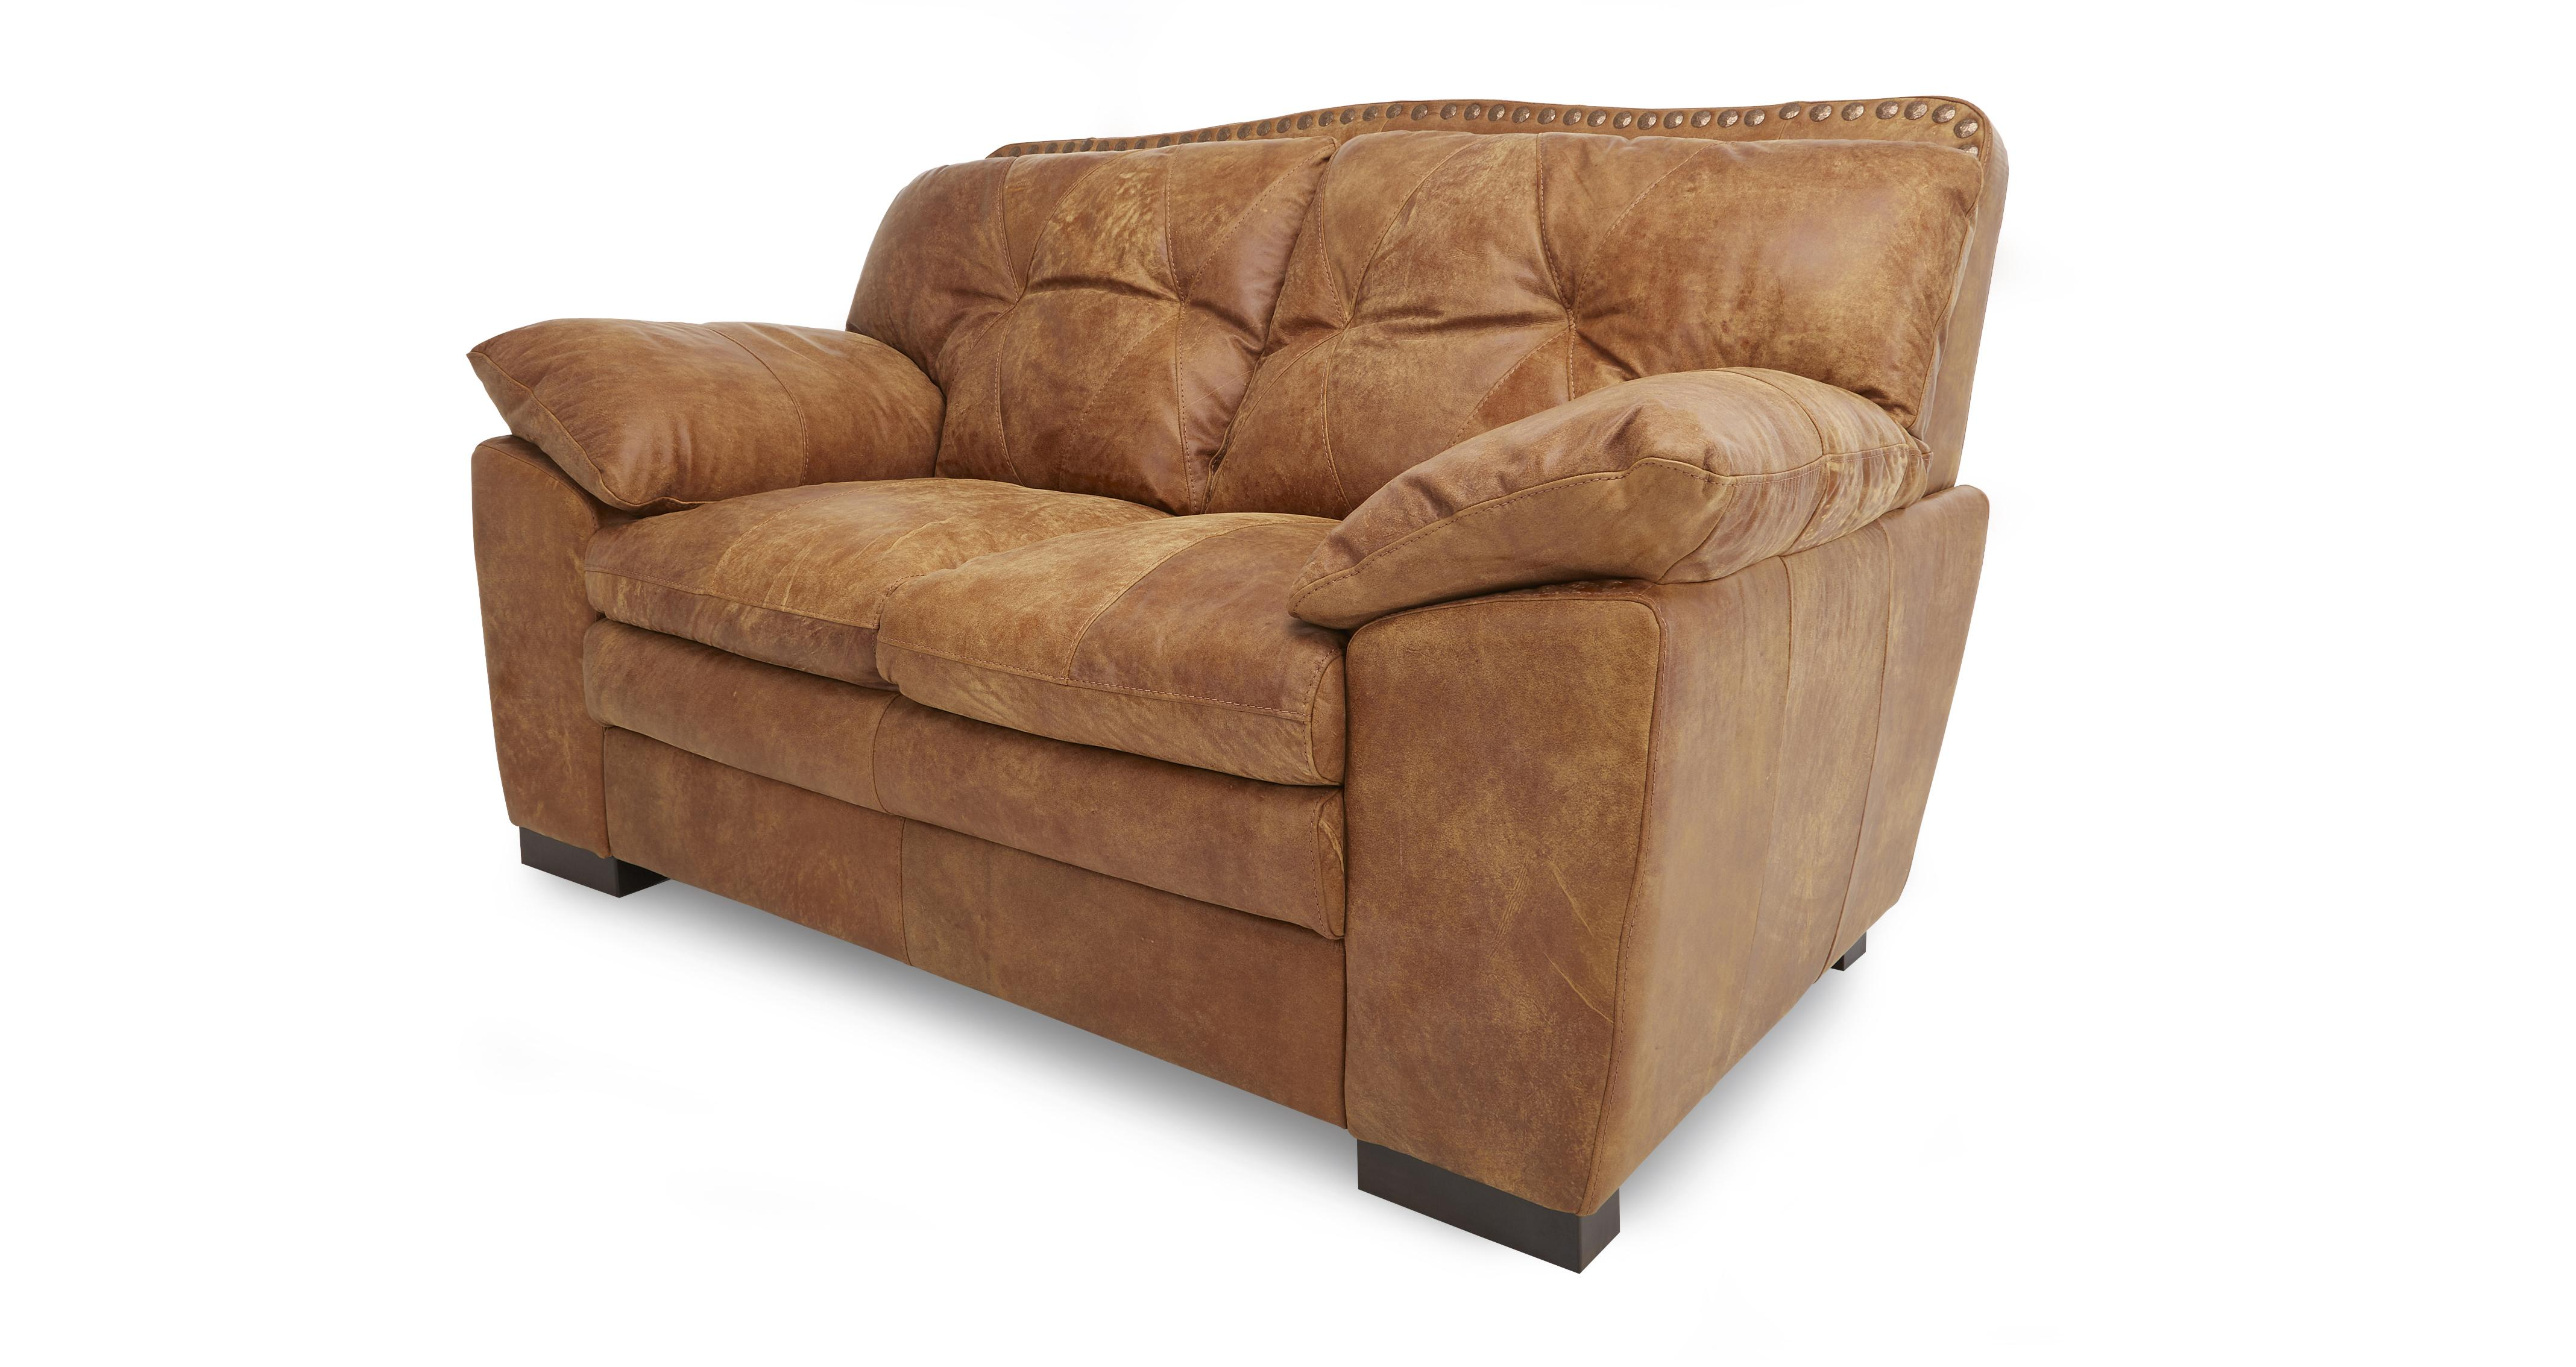 2 seater leather sofas at dfs sofa redondo jardim wyatt ranch ebay